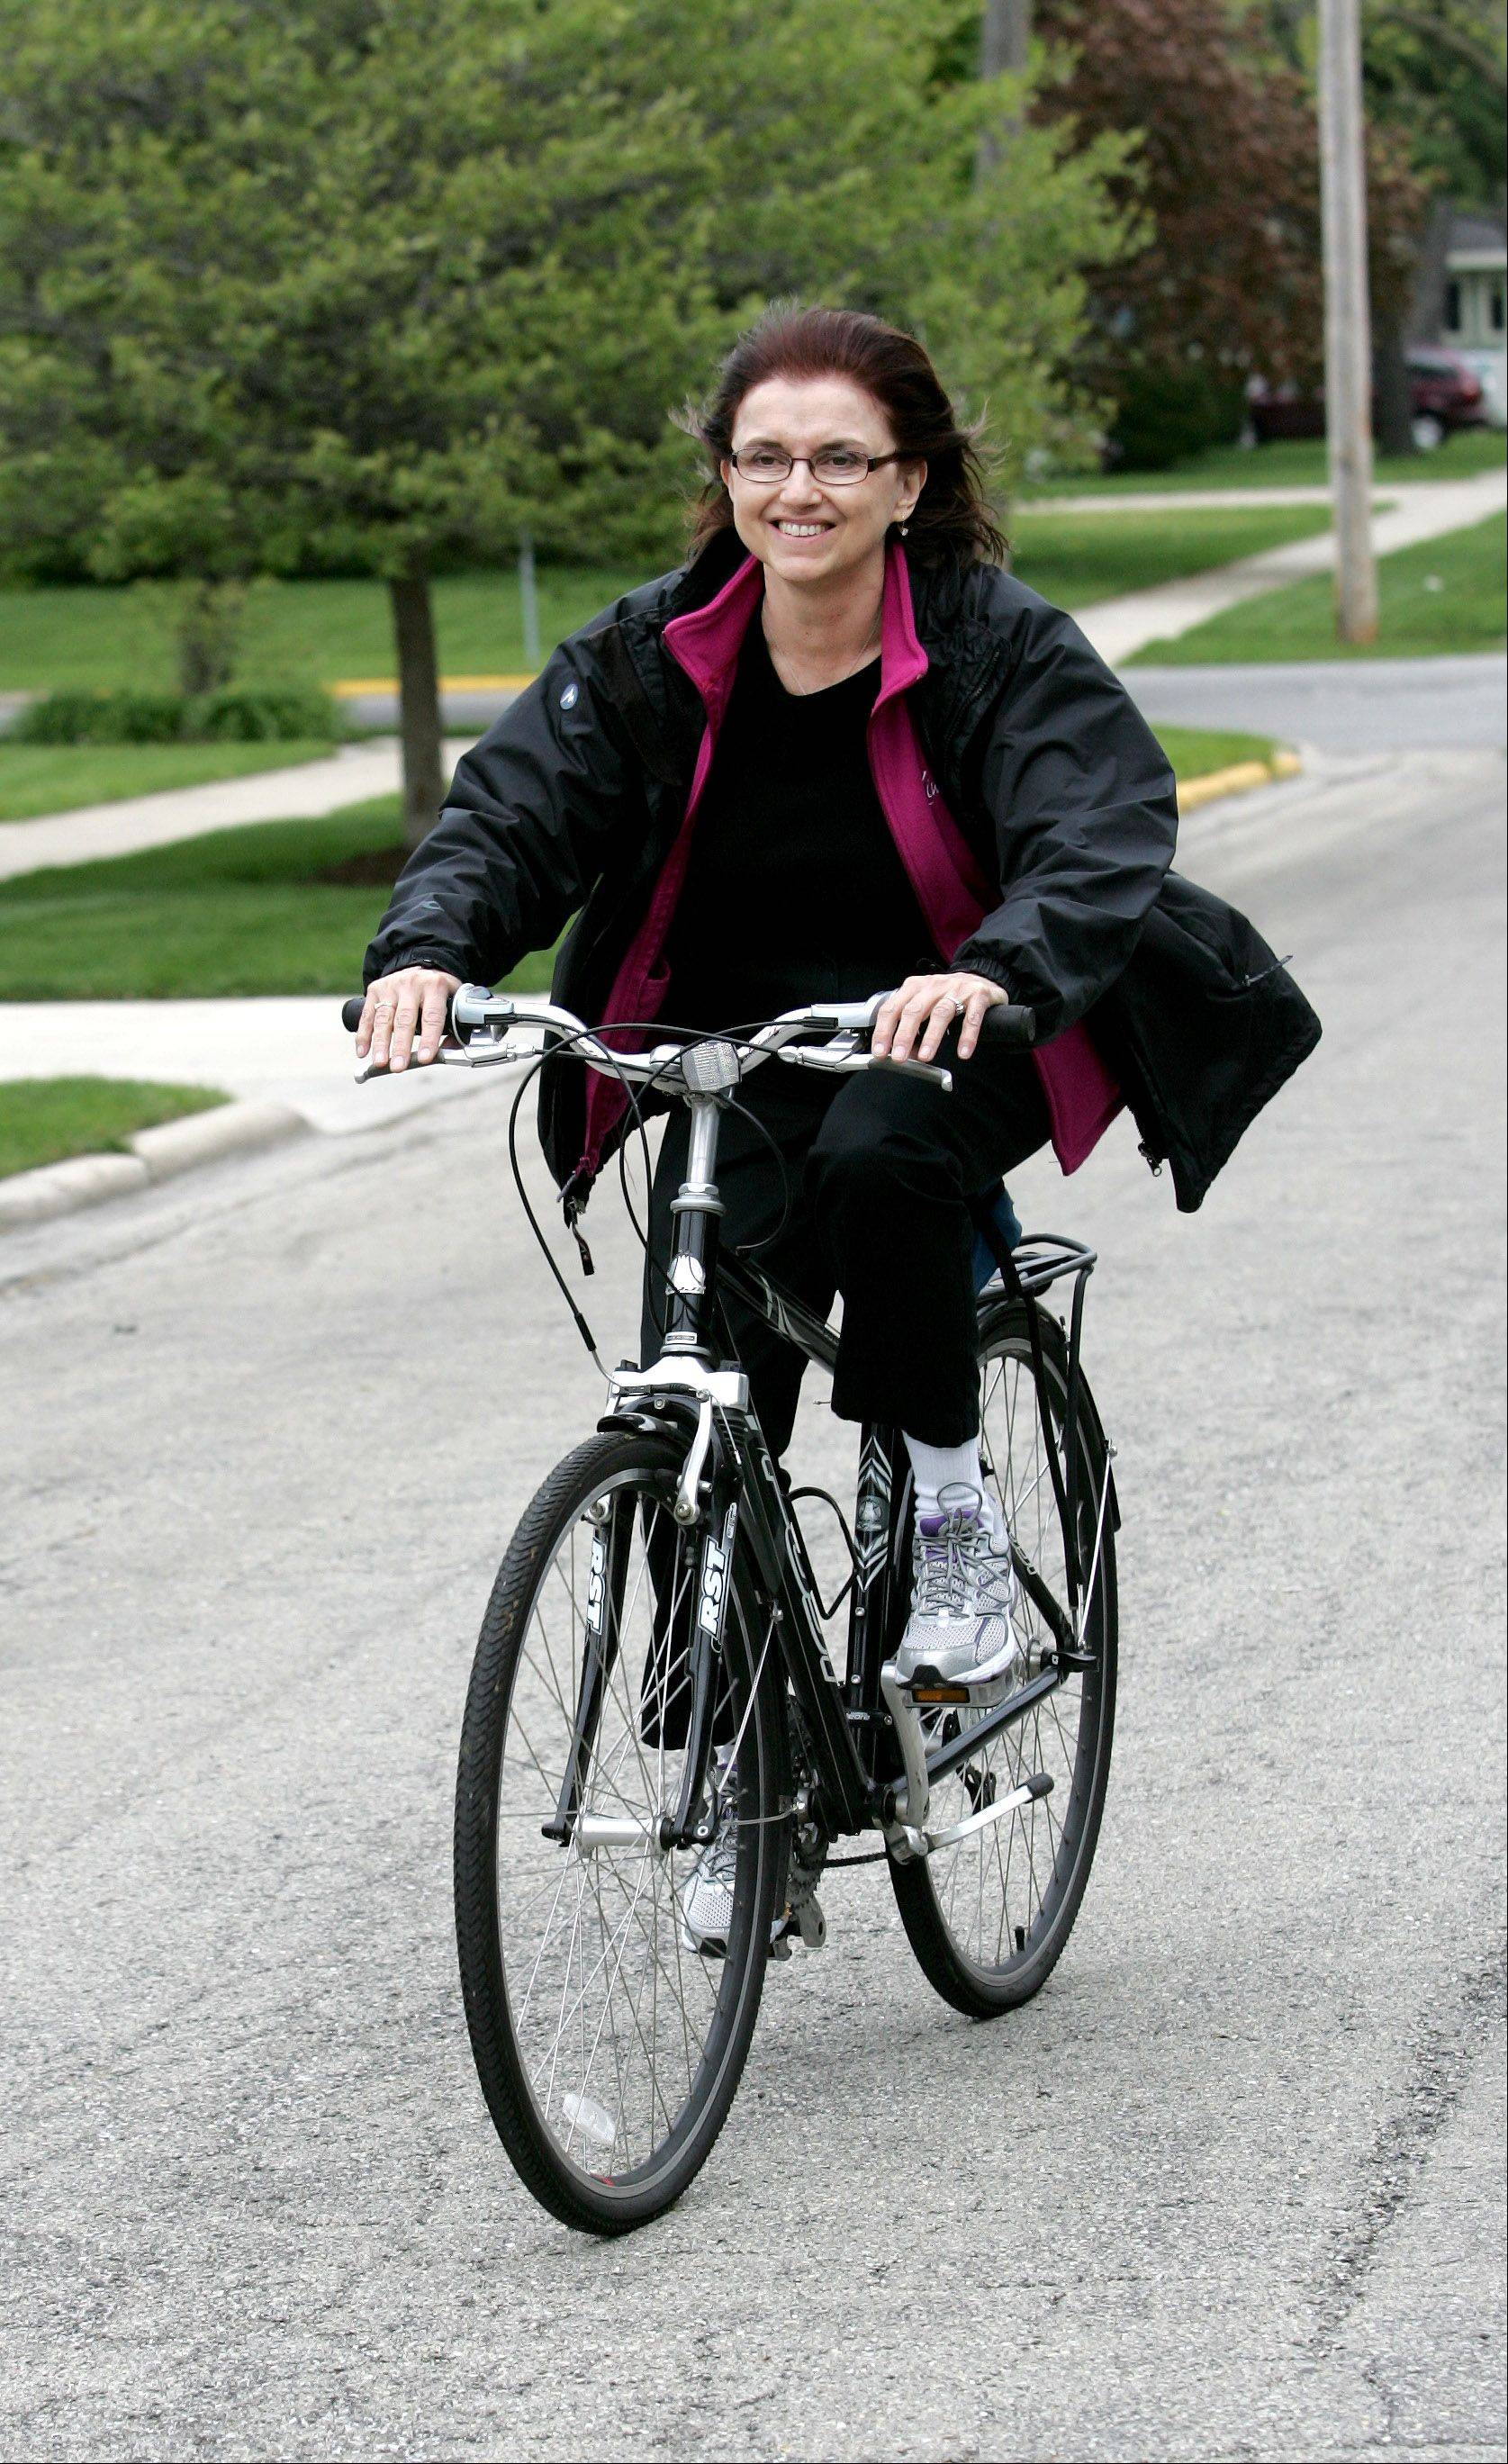 Mavis Bates of Aurora is passionate about conservation, and is working to add to her own environmentally friendly efforts by riding her bike more often instead of driving. She started a group called Aurora Green Lights, which is planning the third annual Aurora Green Fest for June 9.